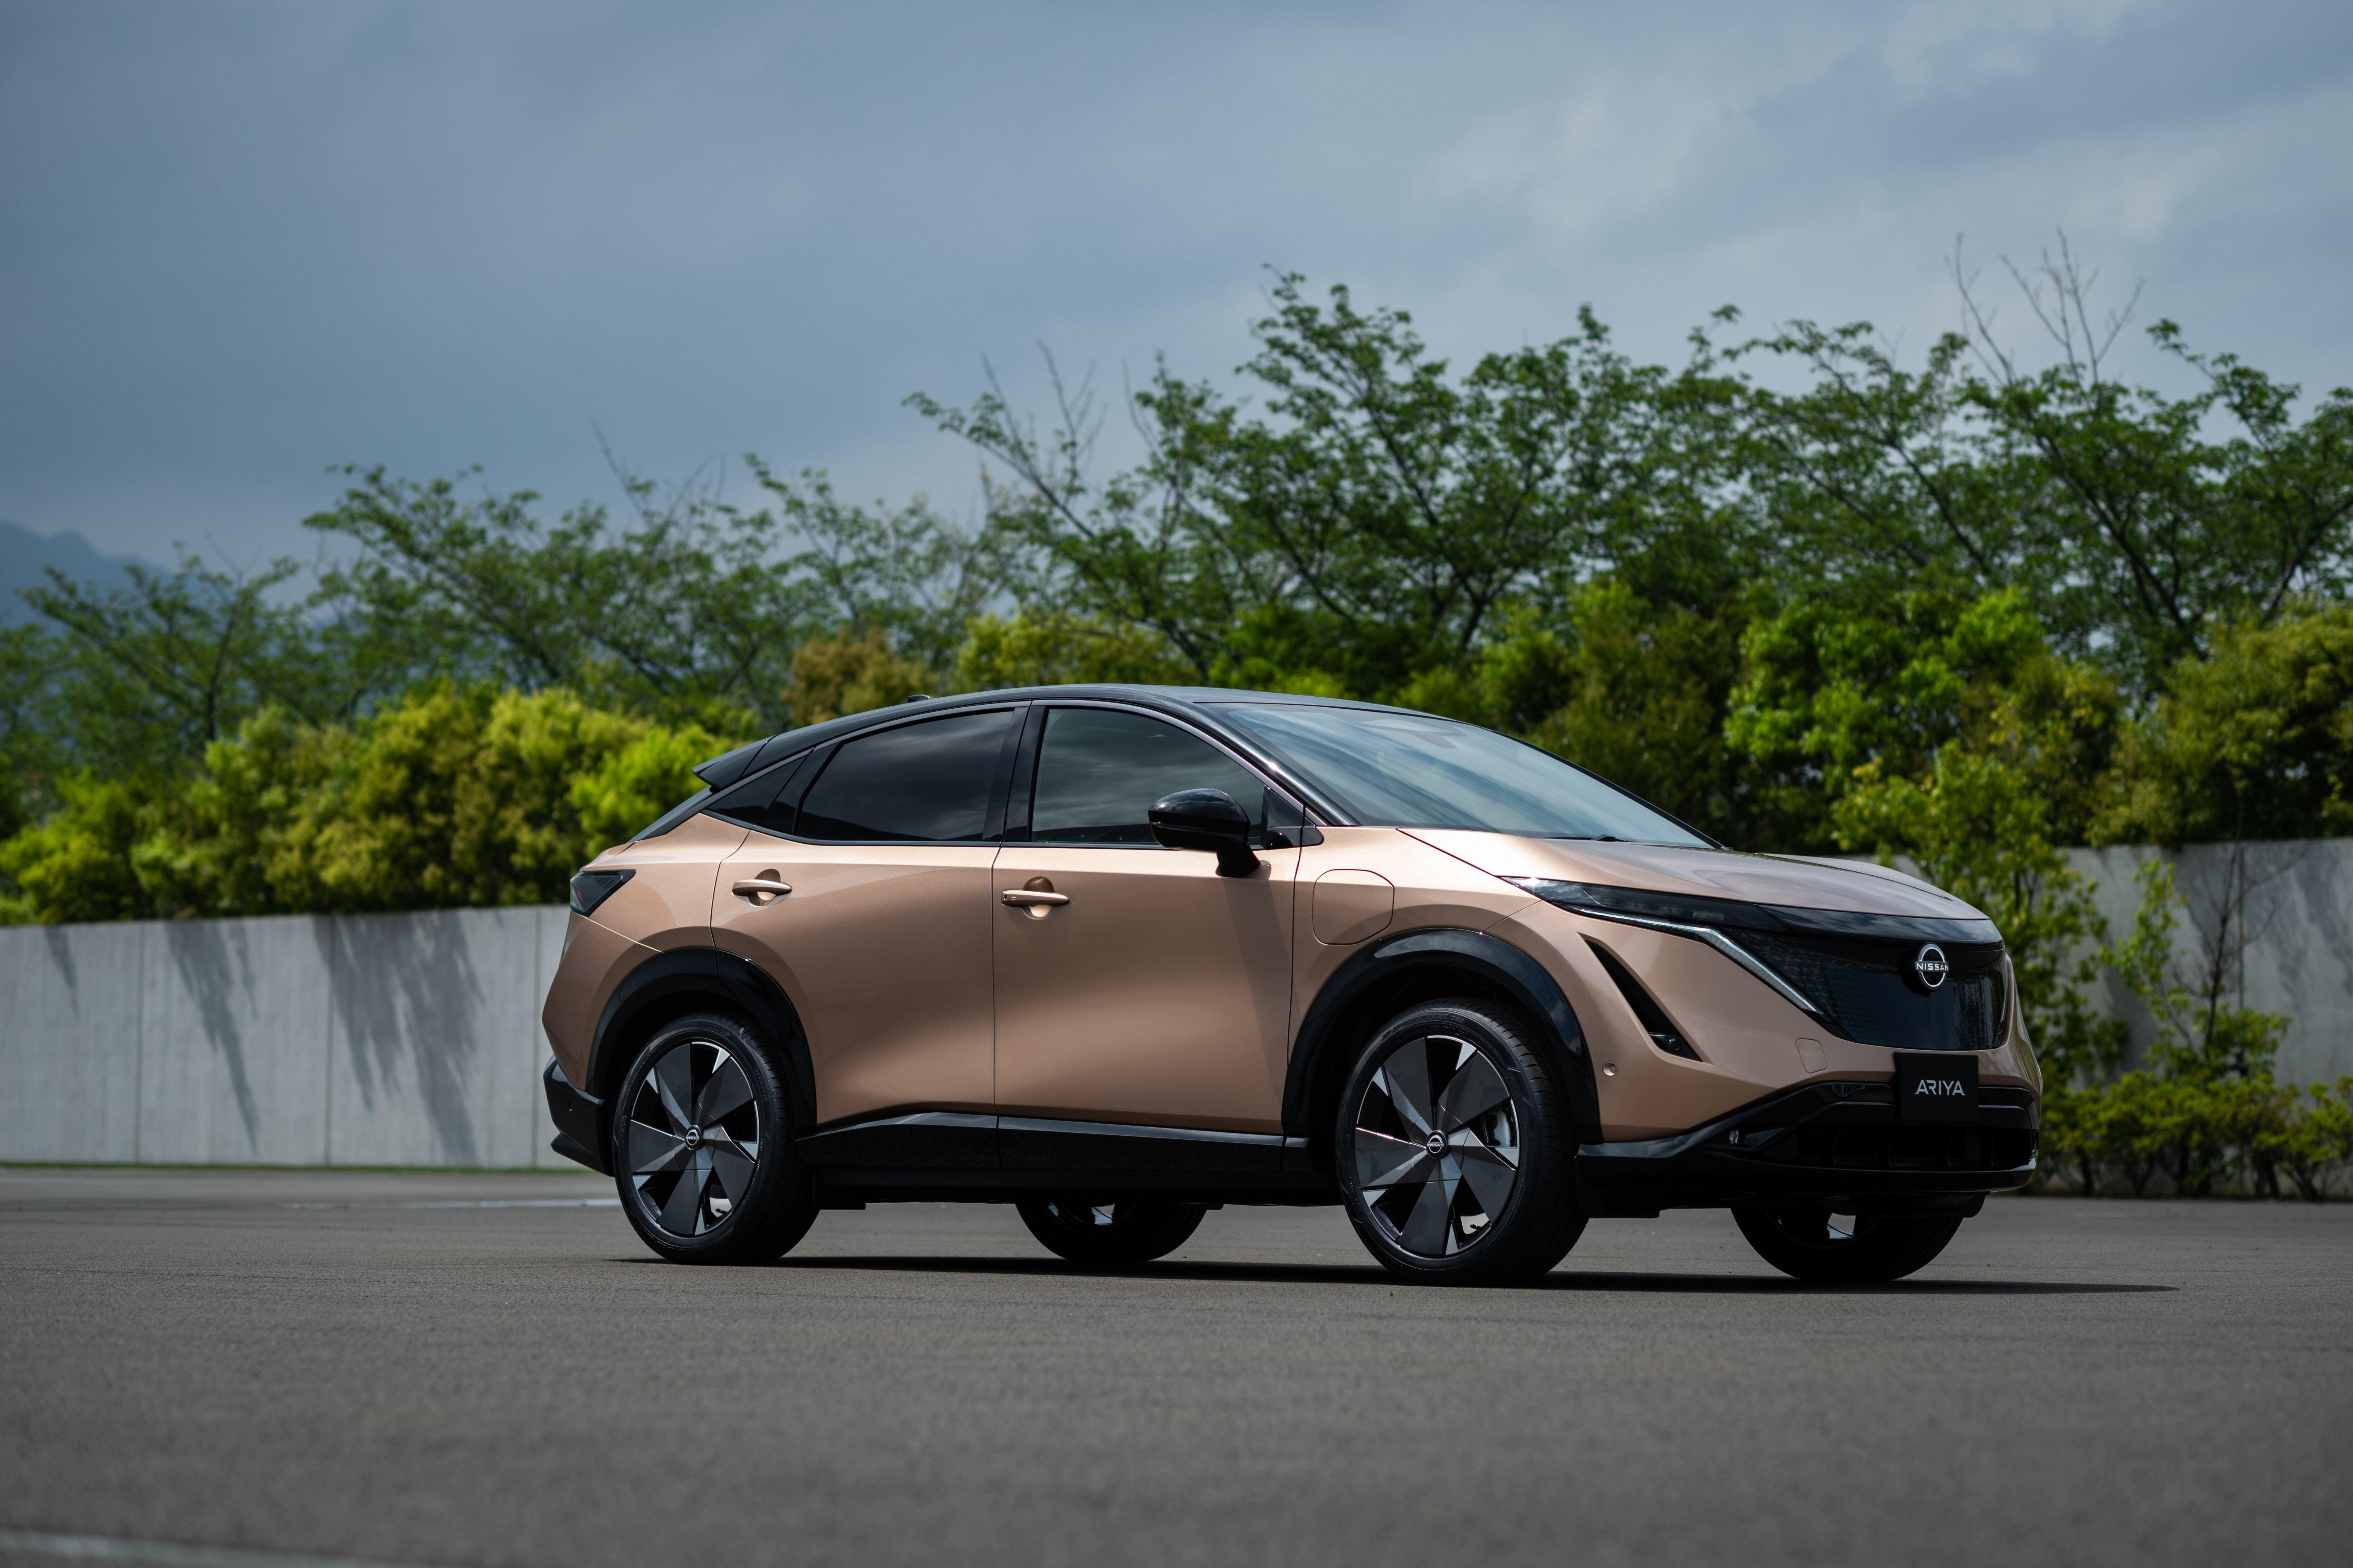 Engine Nissan Concept 2022 Price In India